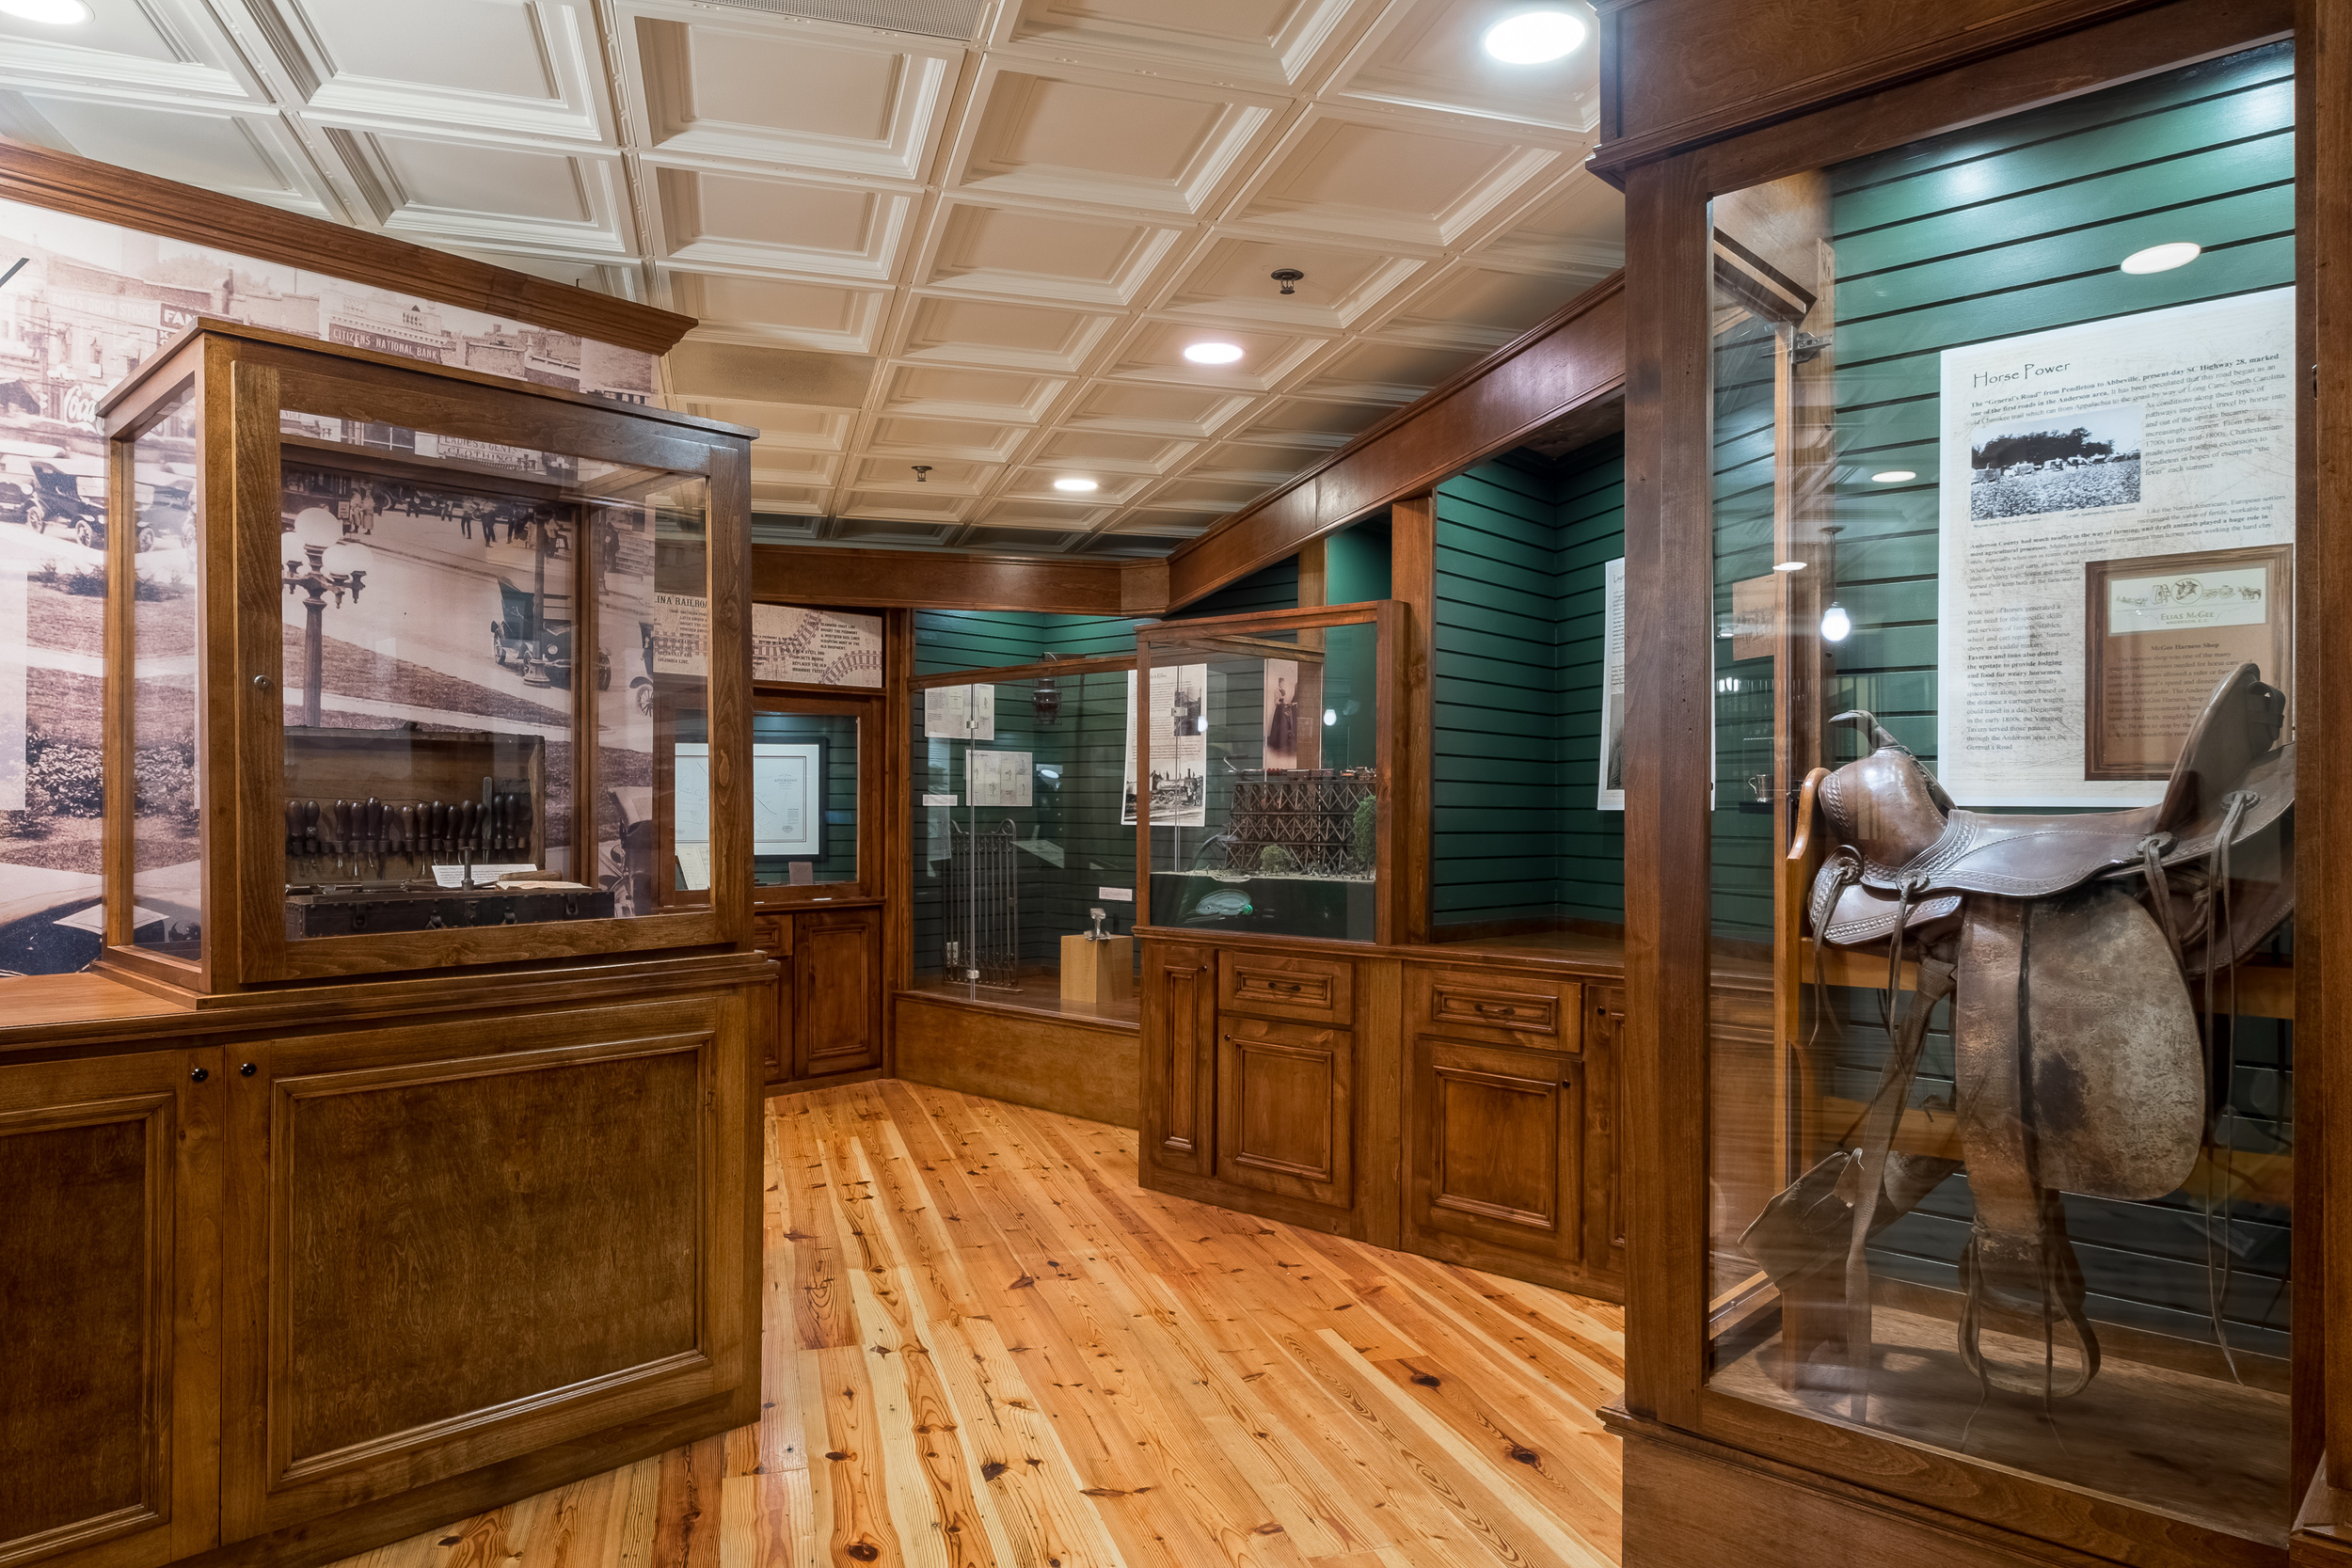 Routes of History Exhibit - Anderson County Museum